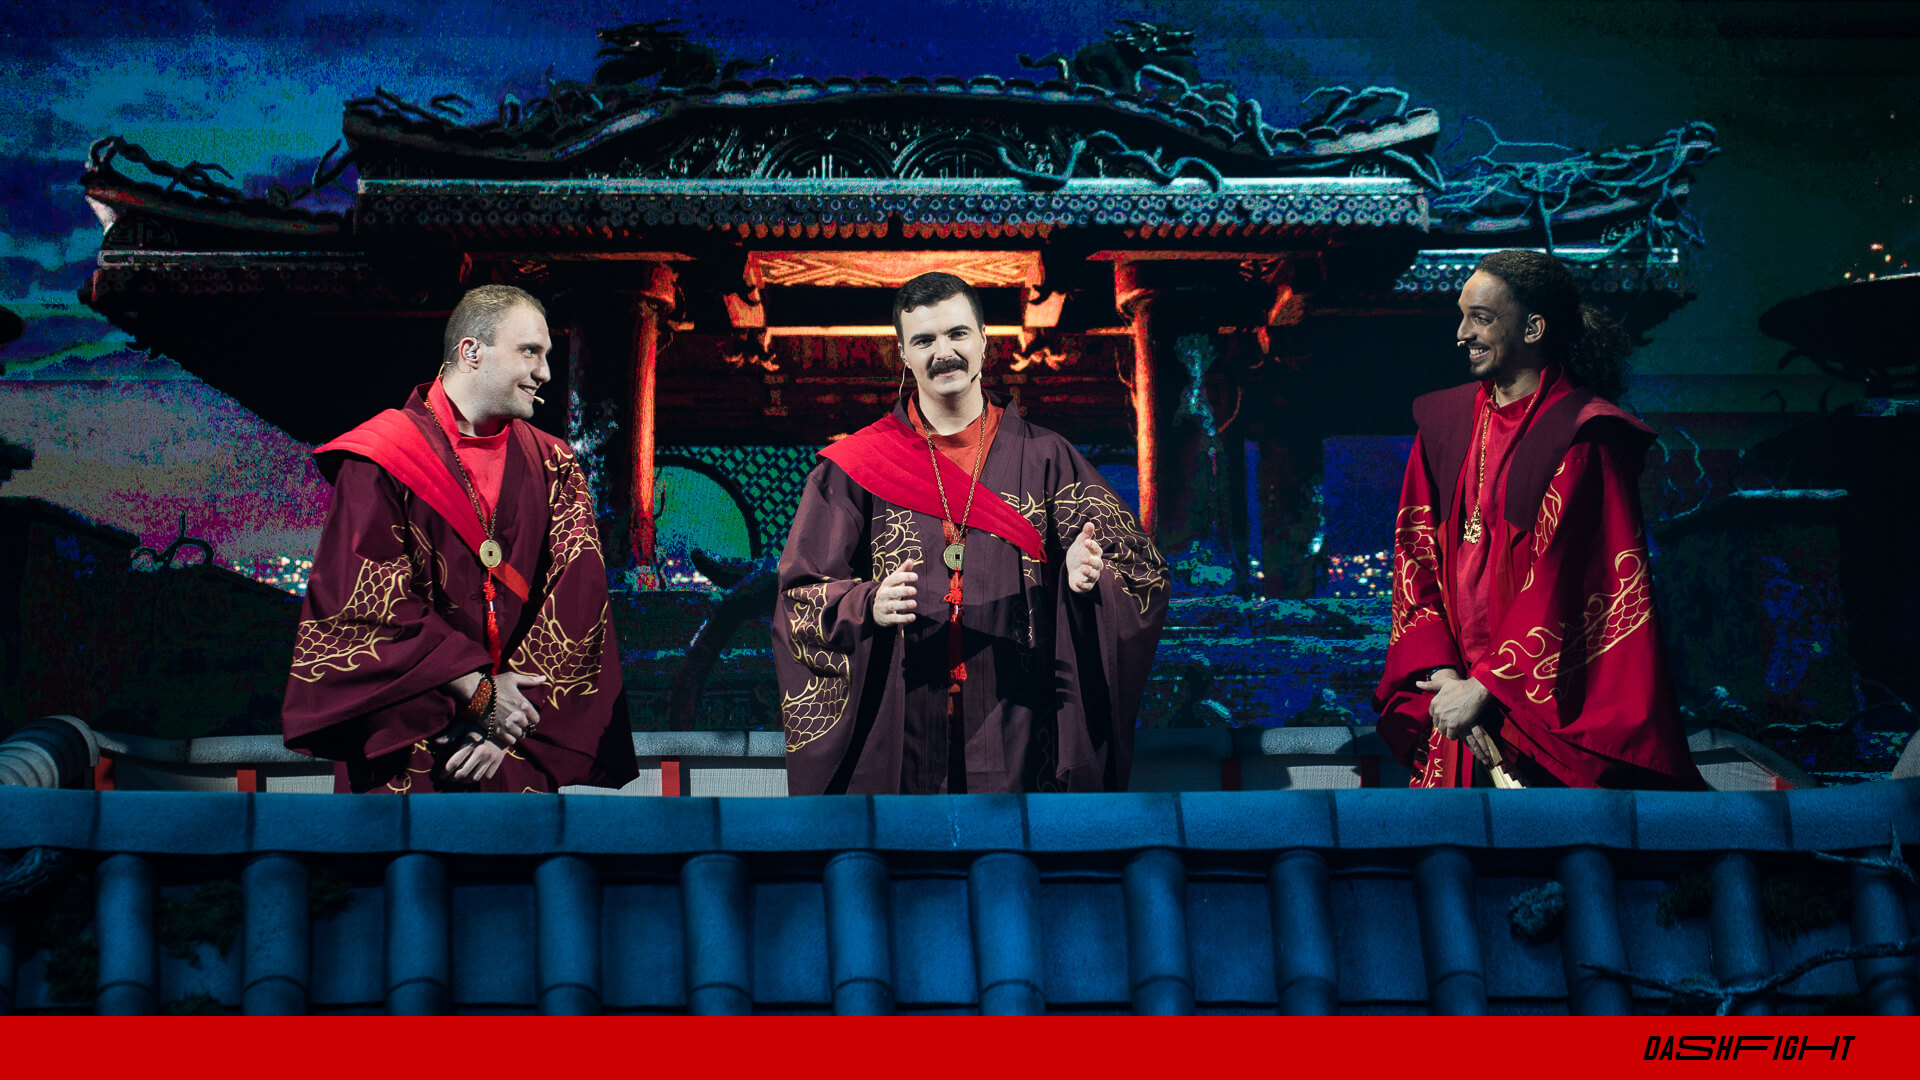 Kitana Prime (on the right) along with the other co-analysts for the WePlay Dragon Temple